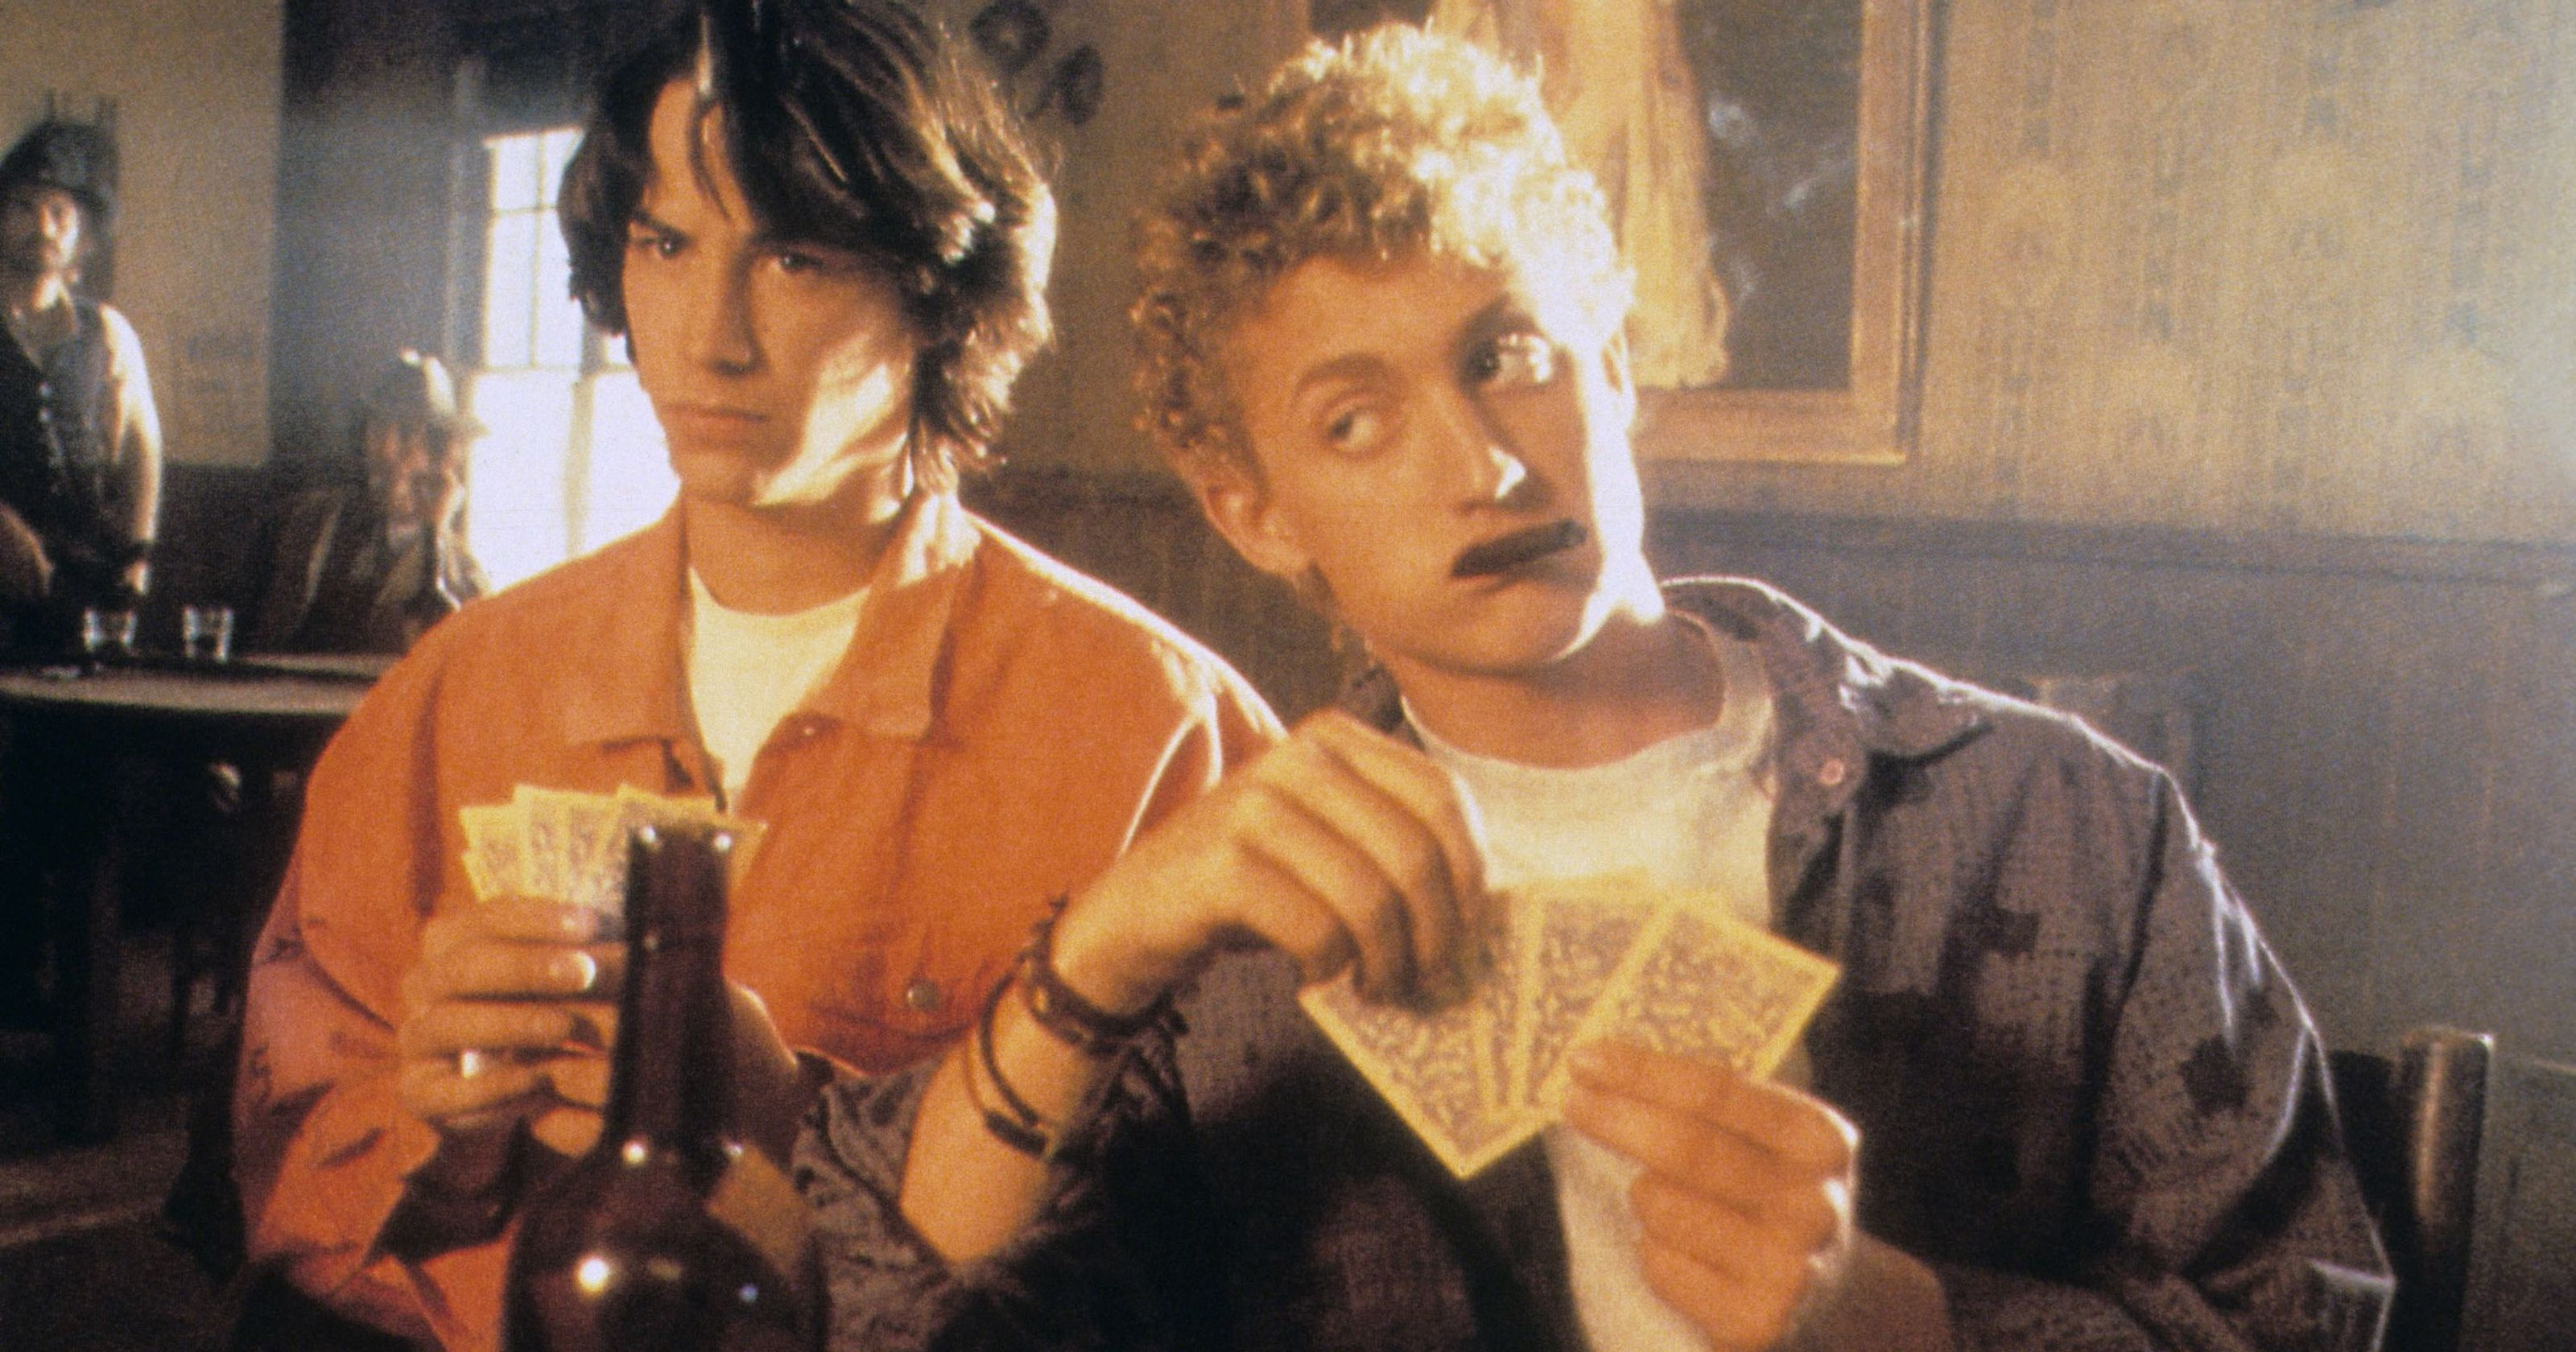 Bill & Ted have their daughters to 'Face The Music' now